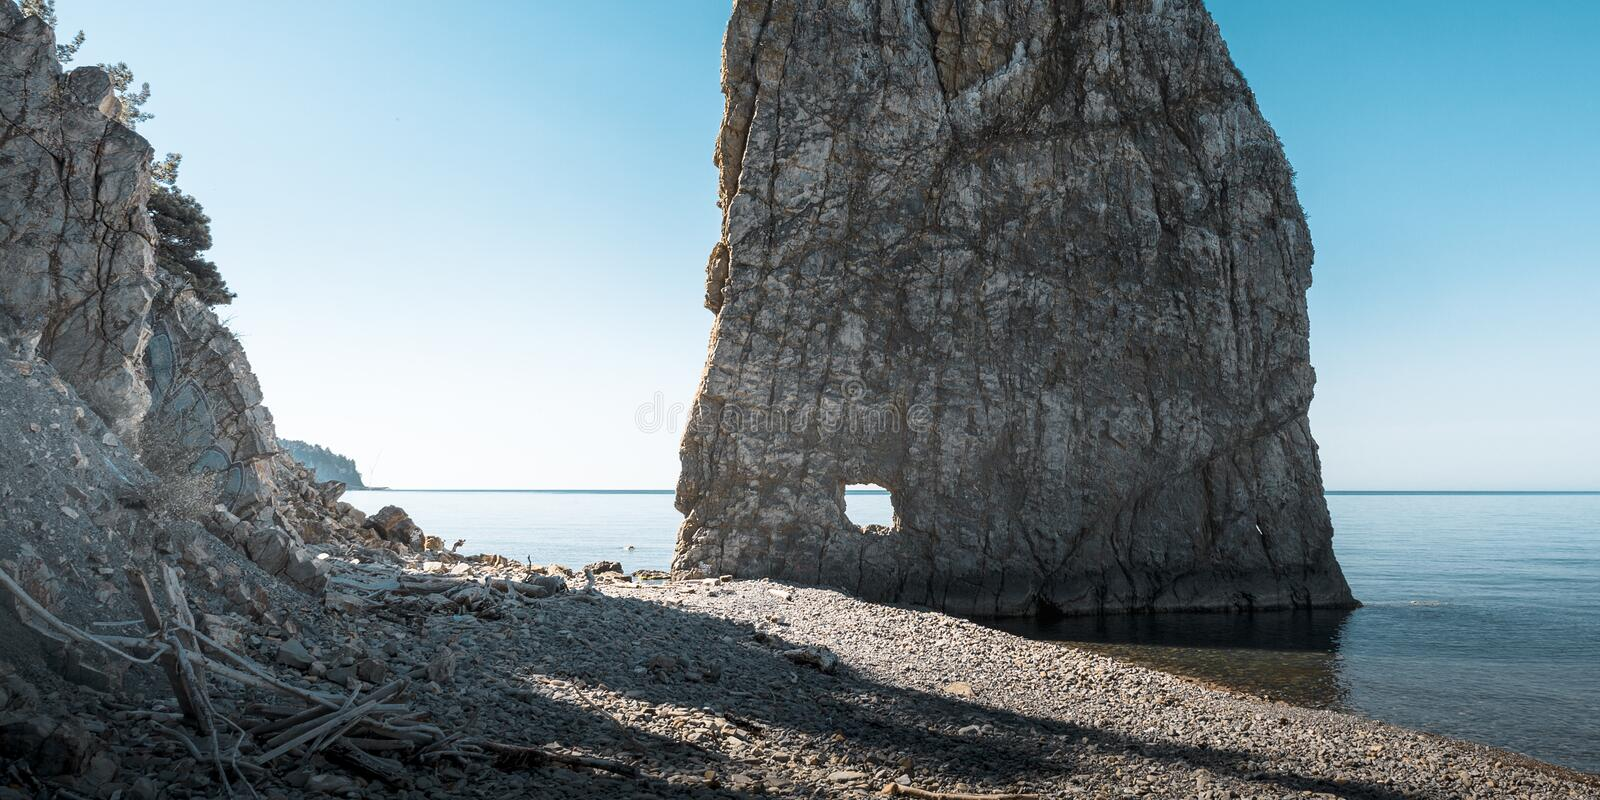 Sail Rock on the beach, picturesque seascape. Black Sea, Krasnodar Region, Northern Caucasus, Russia royalty free stock photos